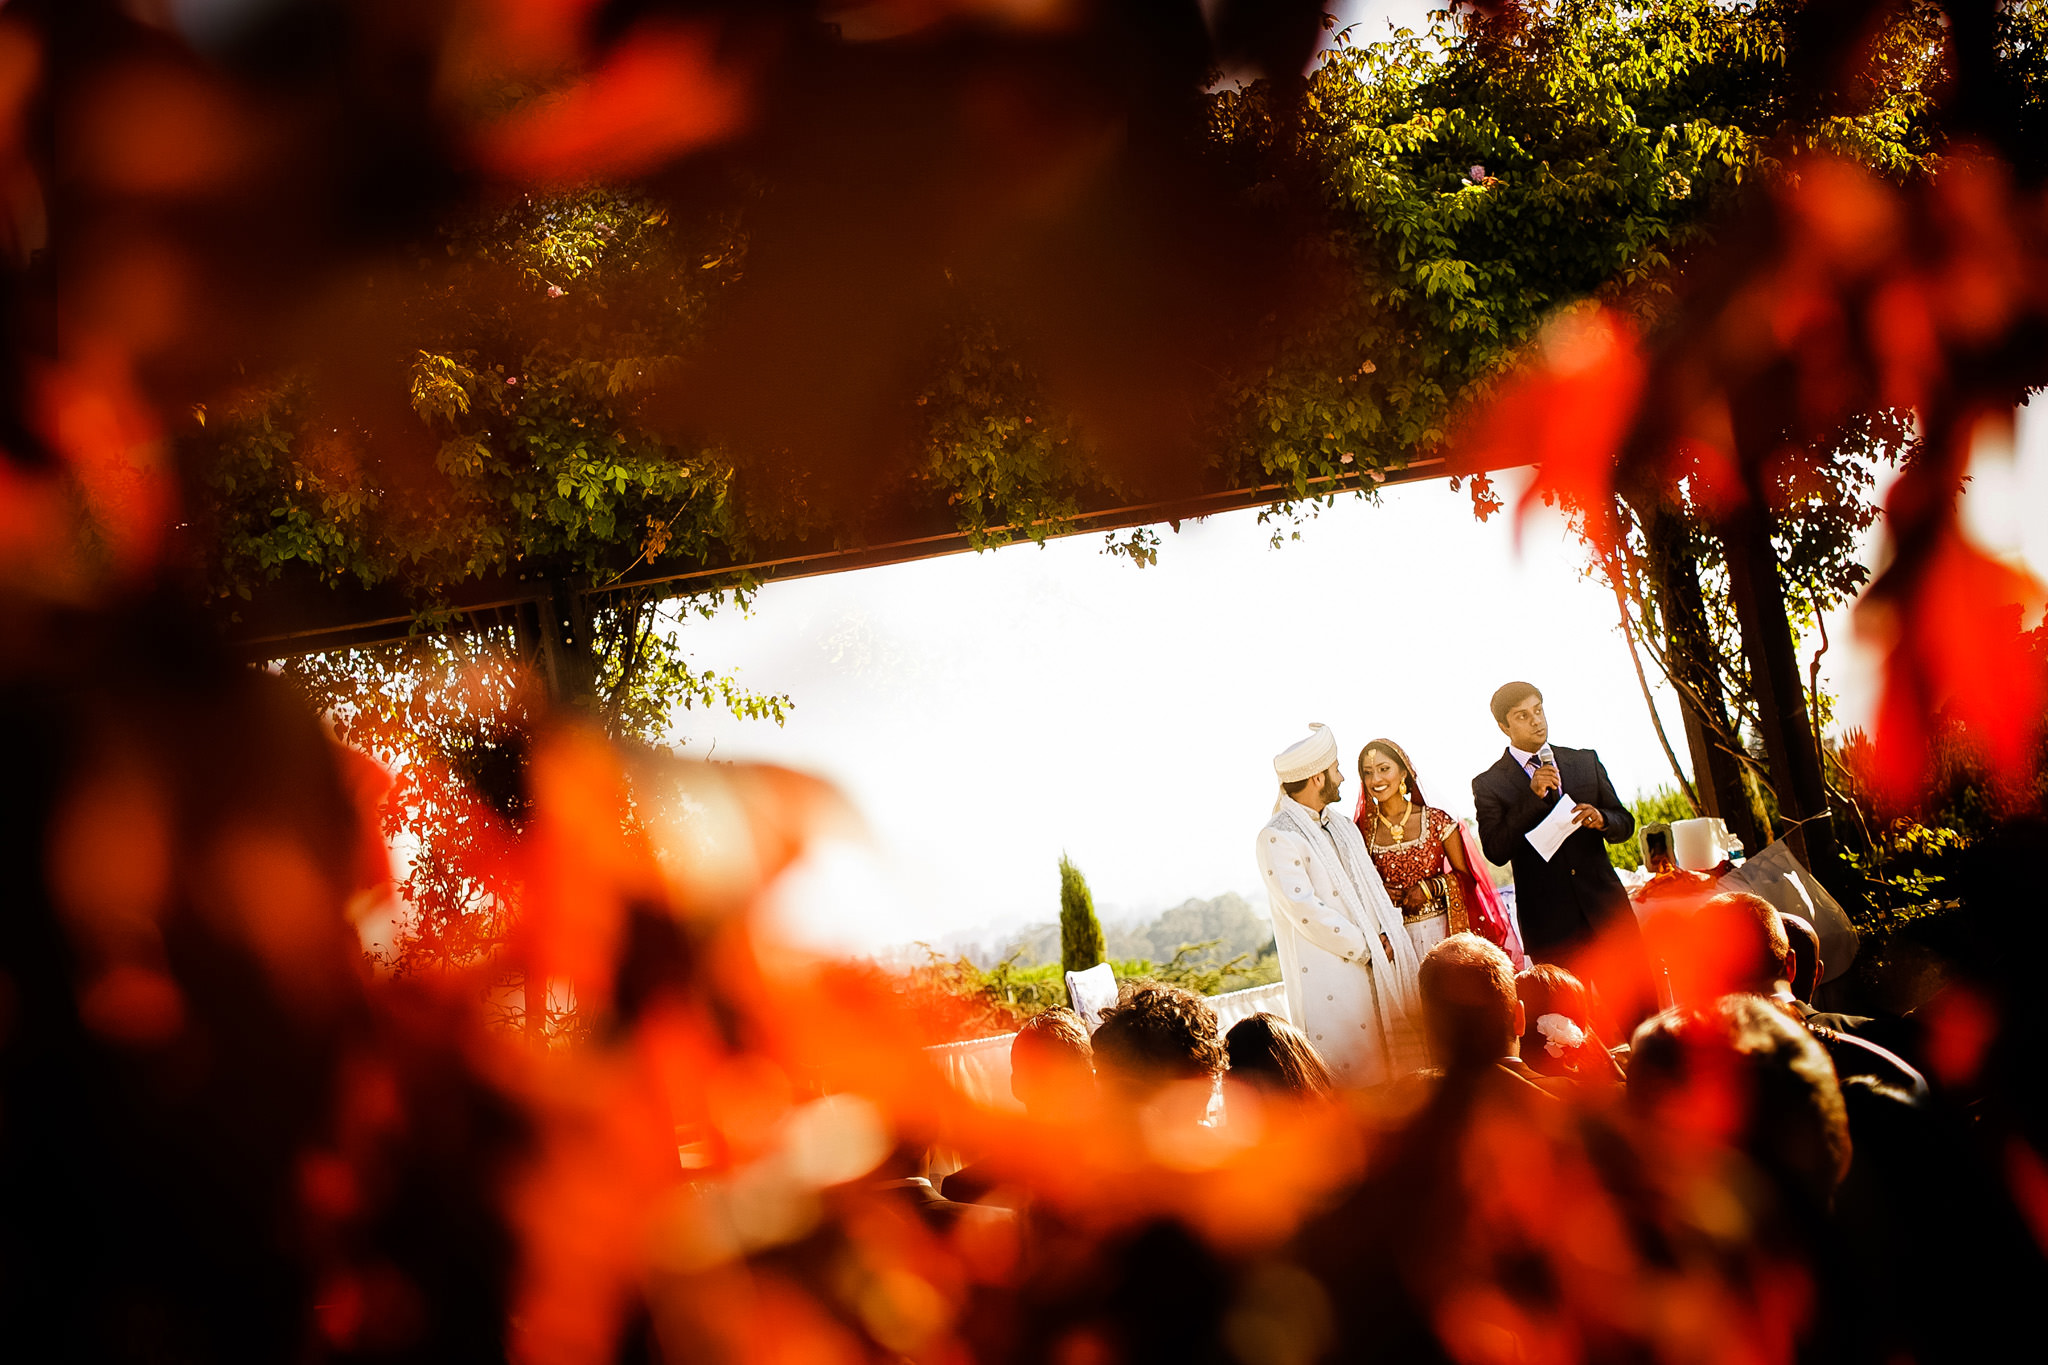 Emily and Shaneil's wedding at Chaminade Resort in Santa Cruz, California